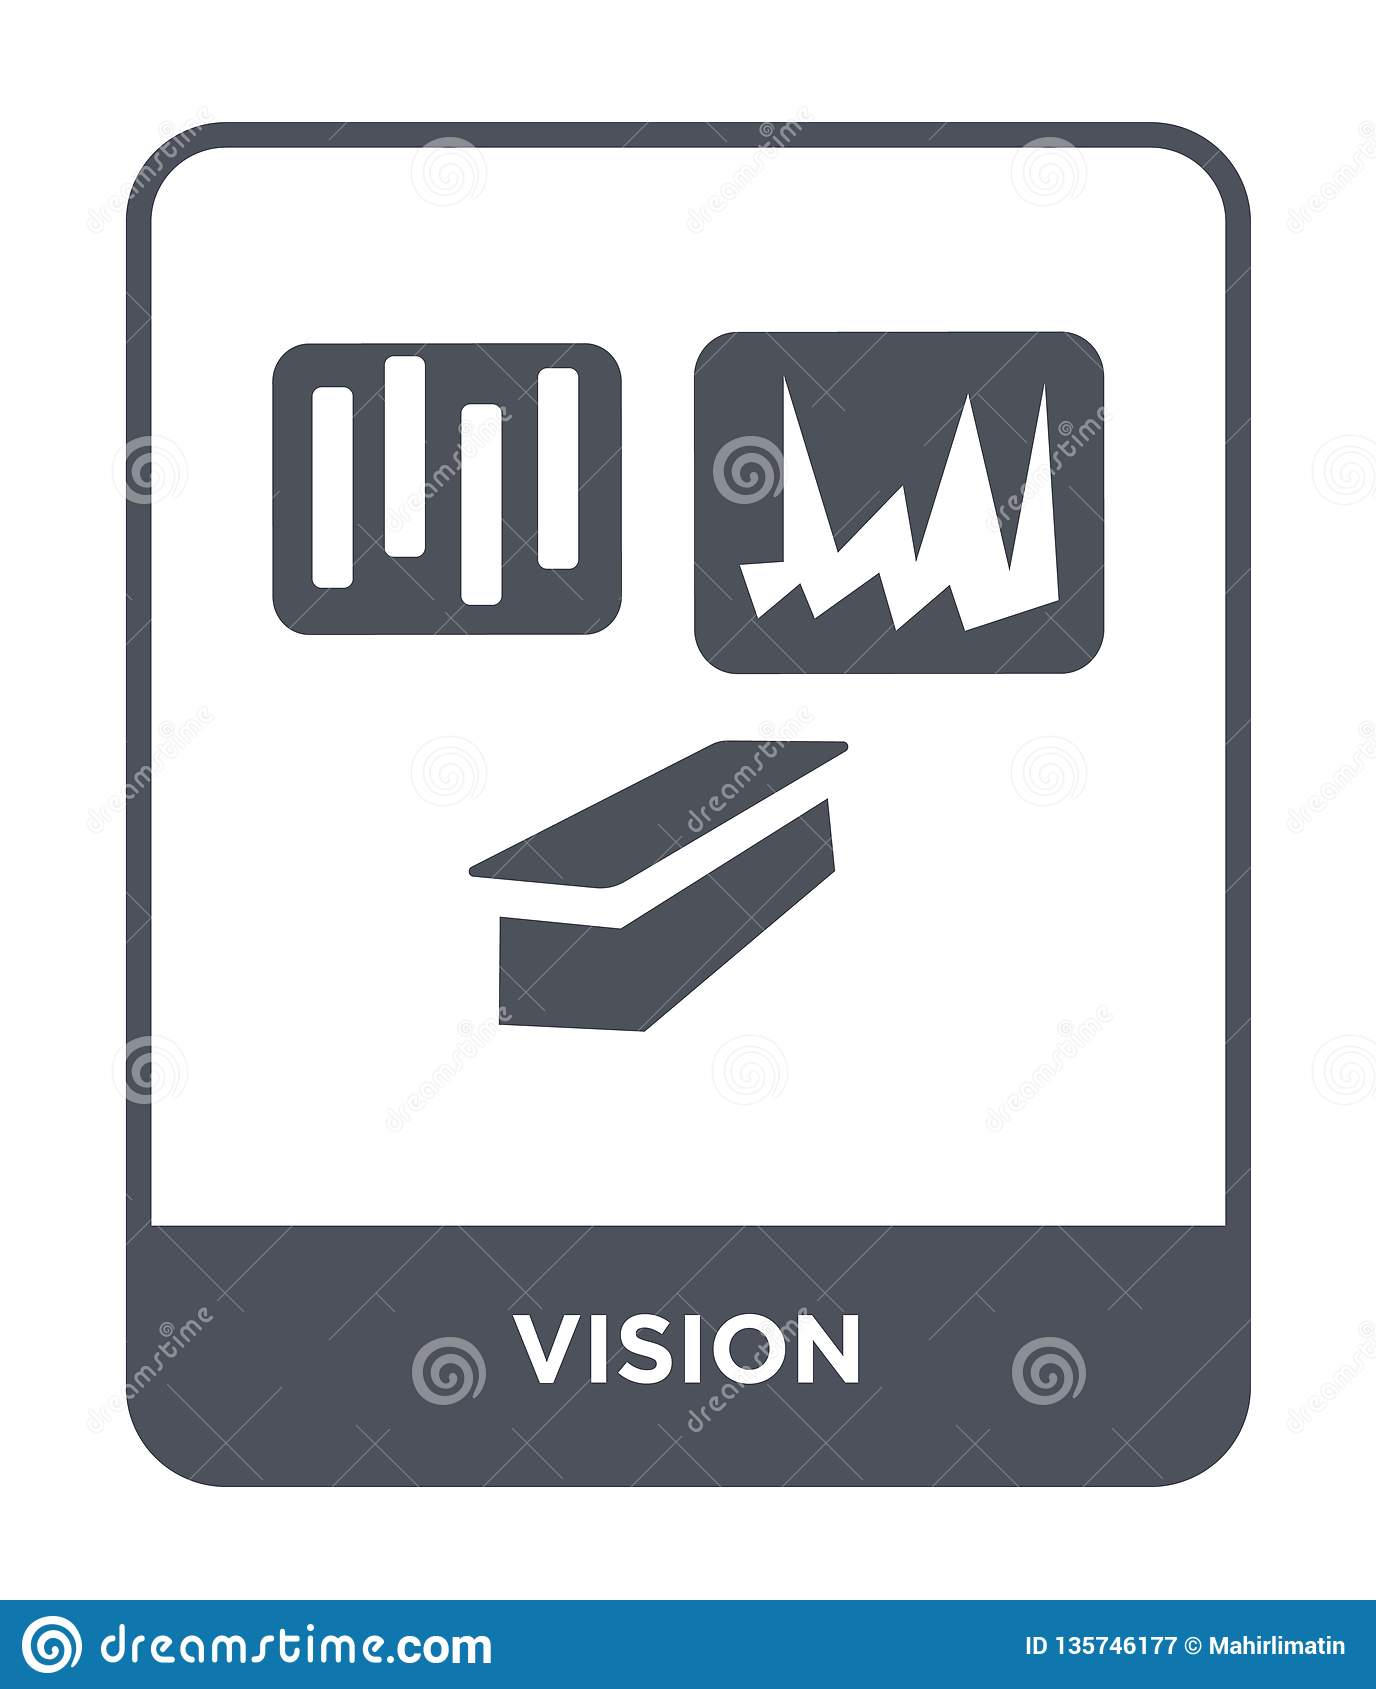 vision icon in trendy design style. vision icon isolated on white background. vision vector icon simple and modern flat symbol for